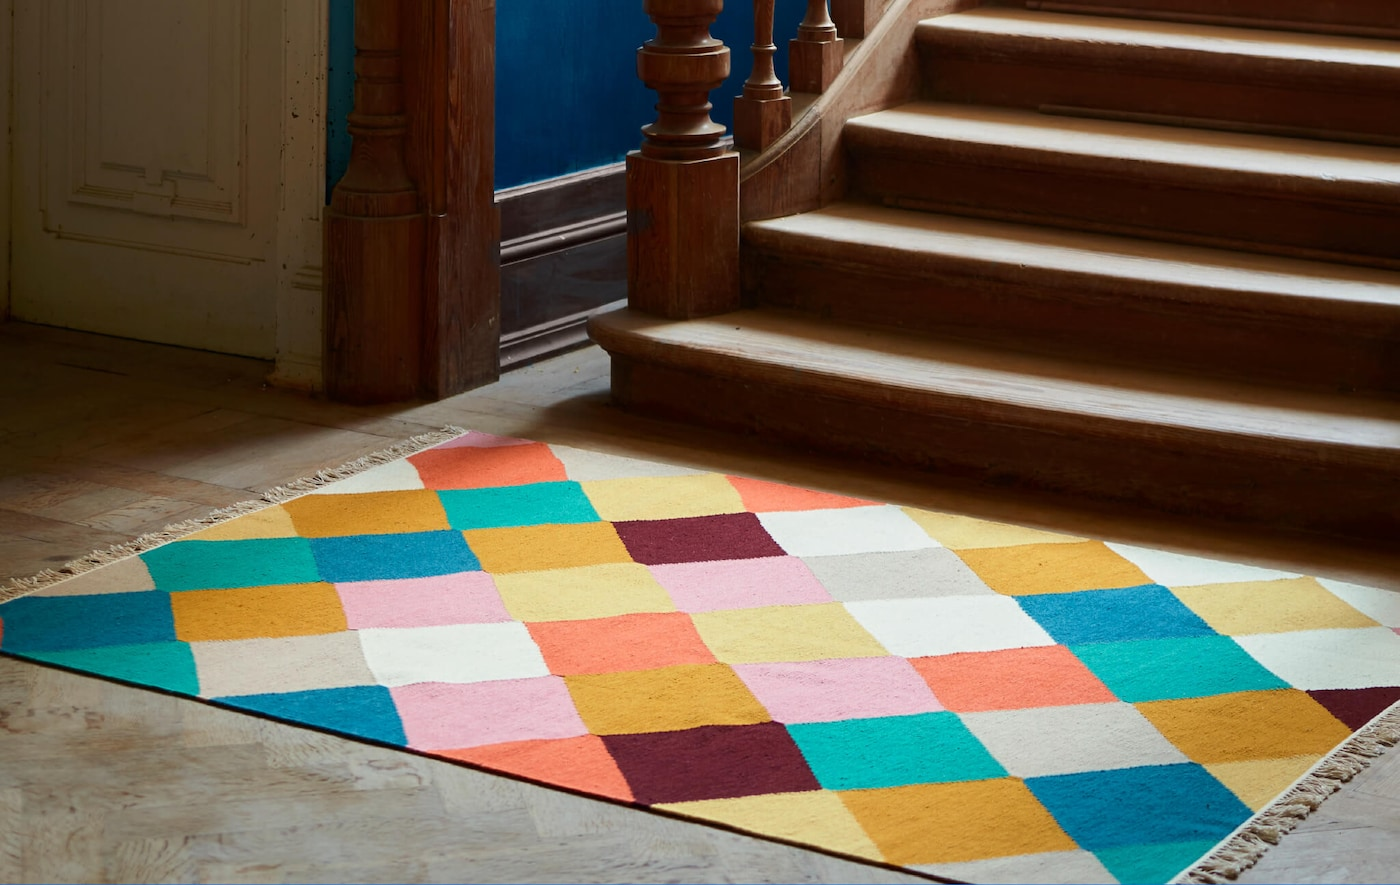 A VINDERÖD rug with a multicolored, checkered pattern lies at the base of a staircase in dark wood with elaborate details.